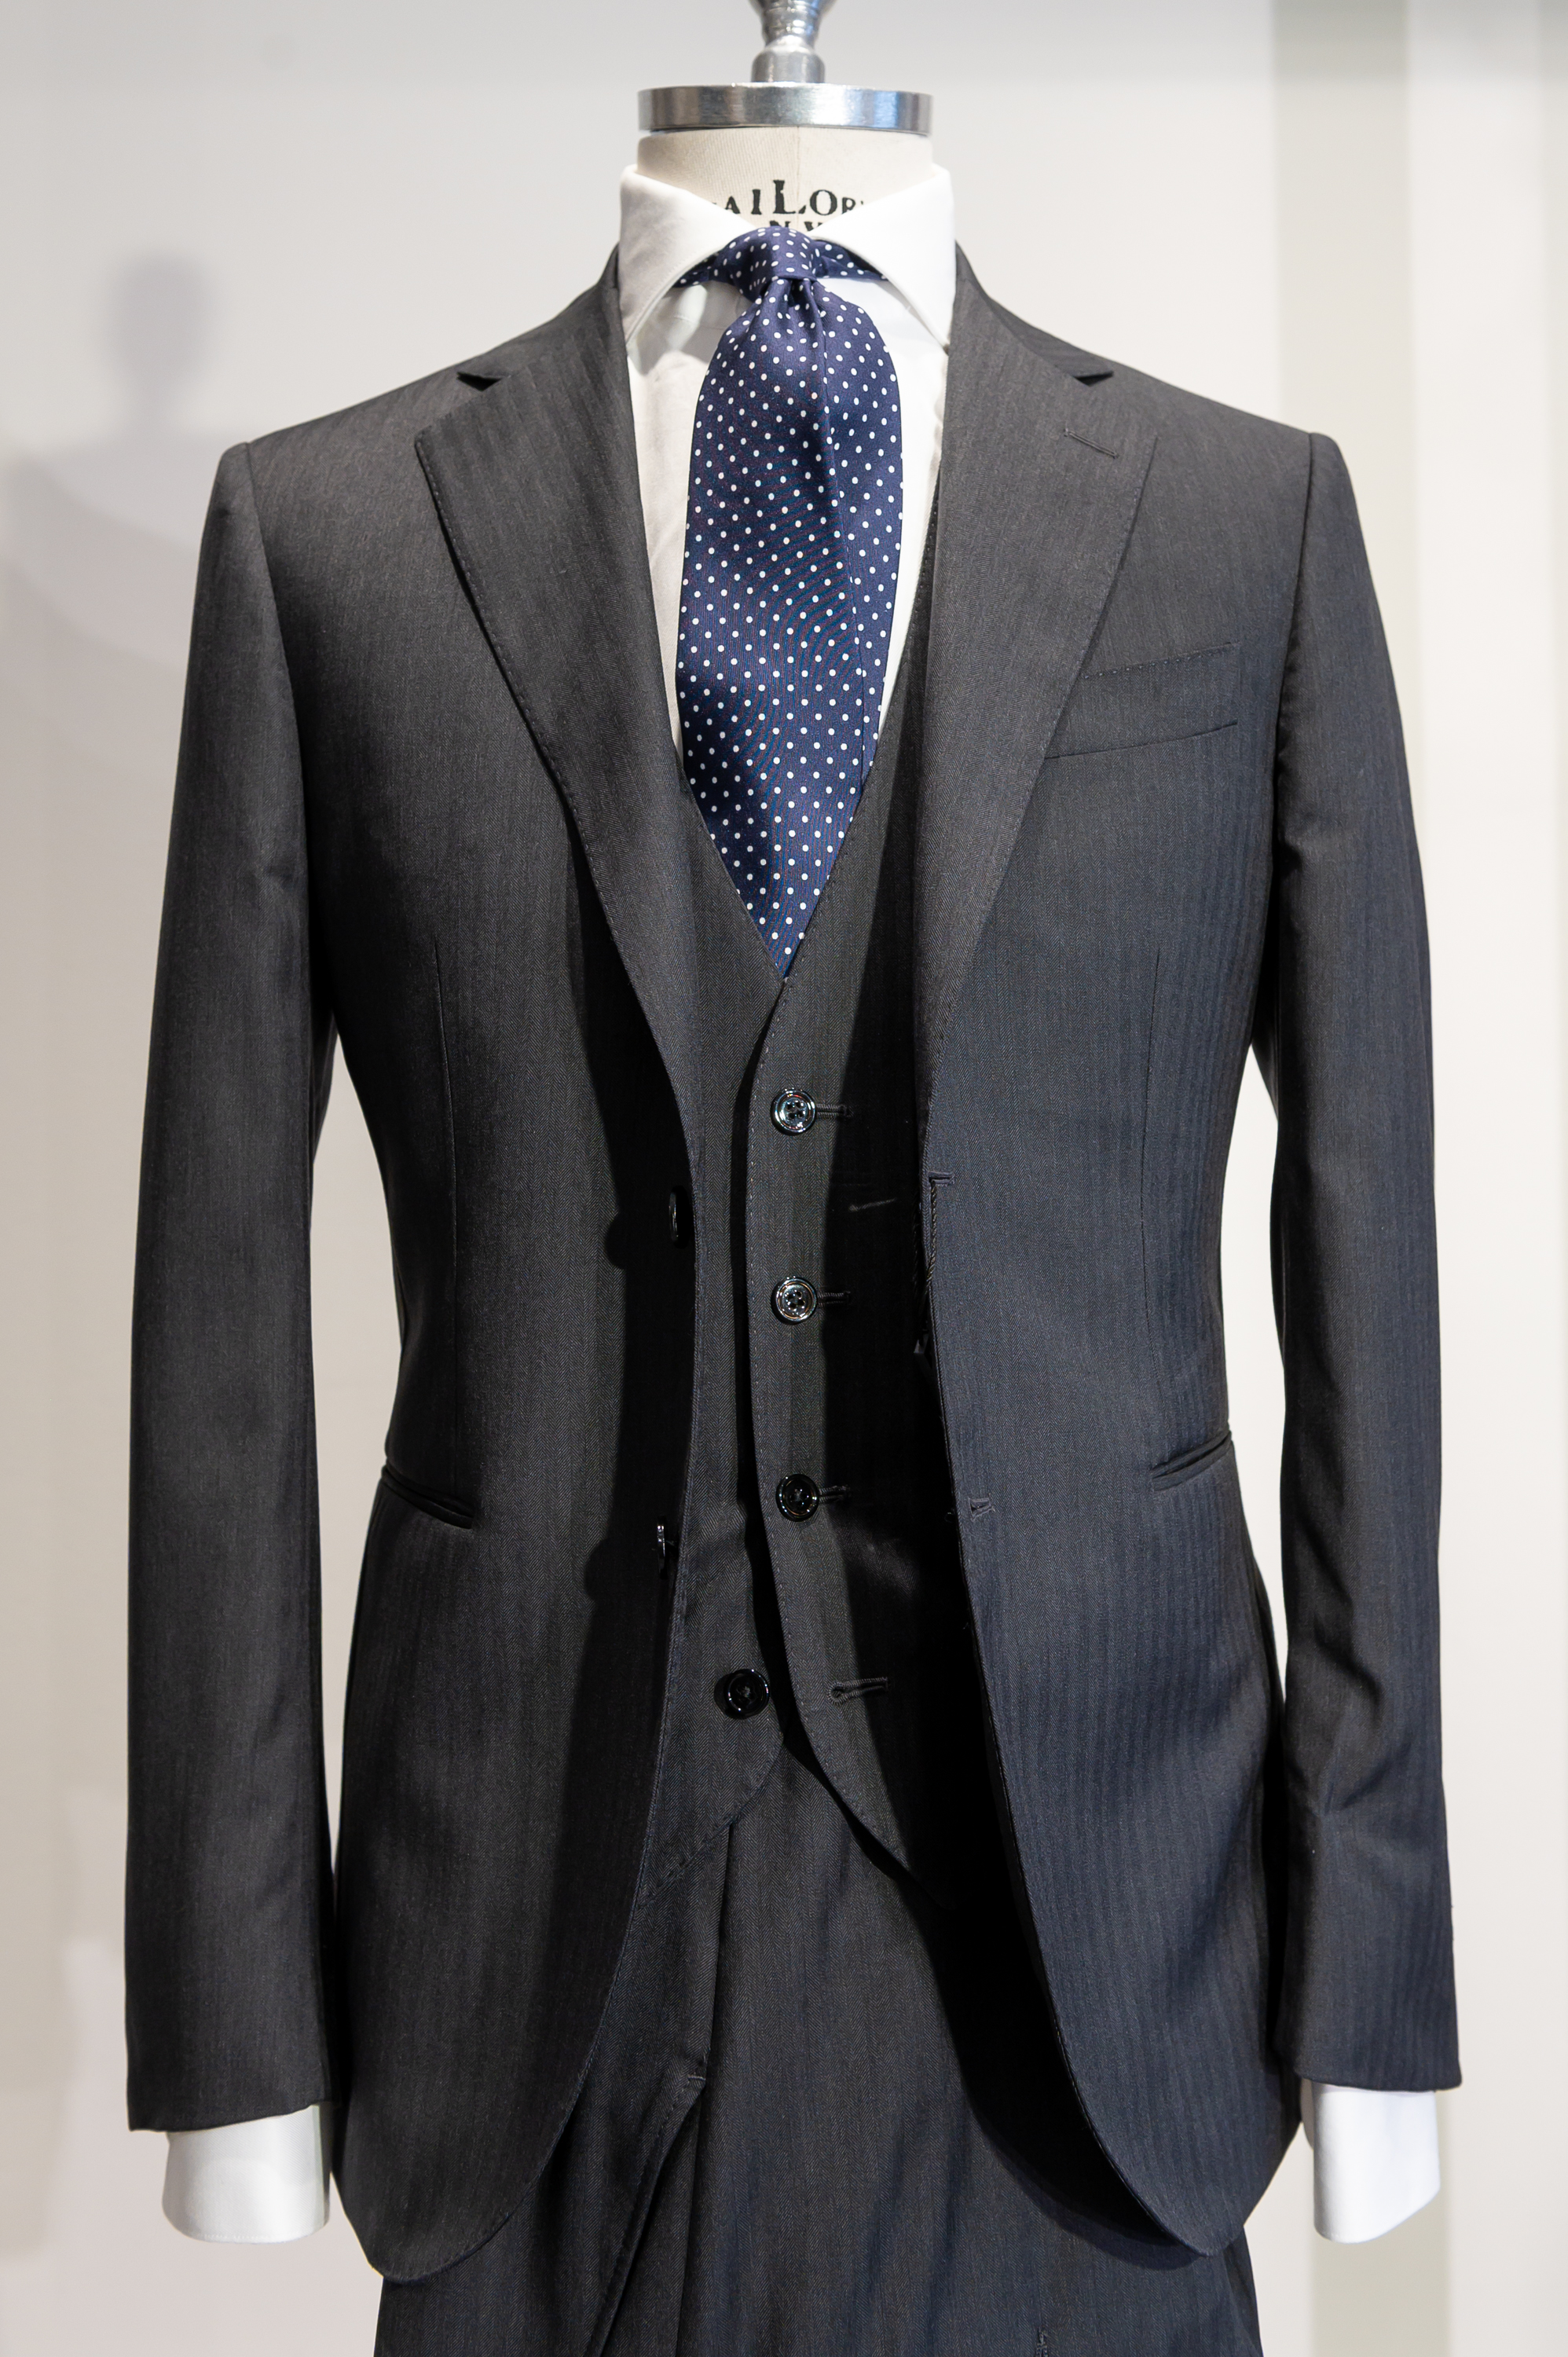 DONOVAN  Blue Tuxedo   6900 Sek   Shawl collar Tuxedo in 100% wool, s130 from full lined, half canvas, 2 jetted pockets, double vents.